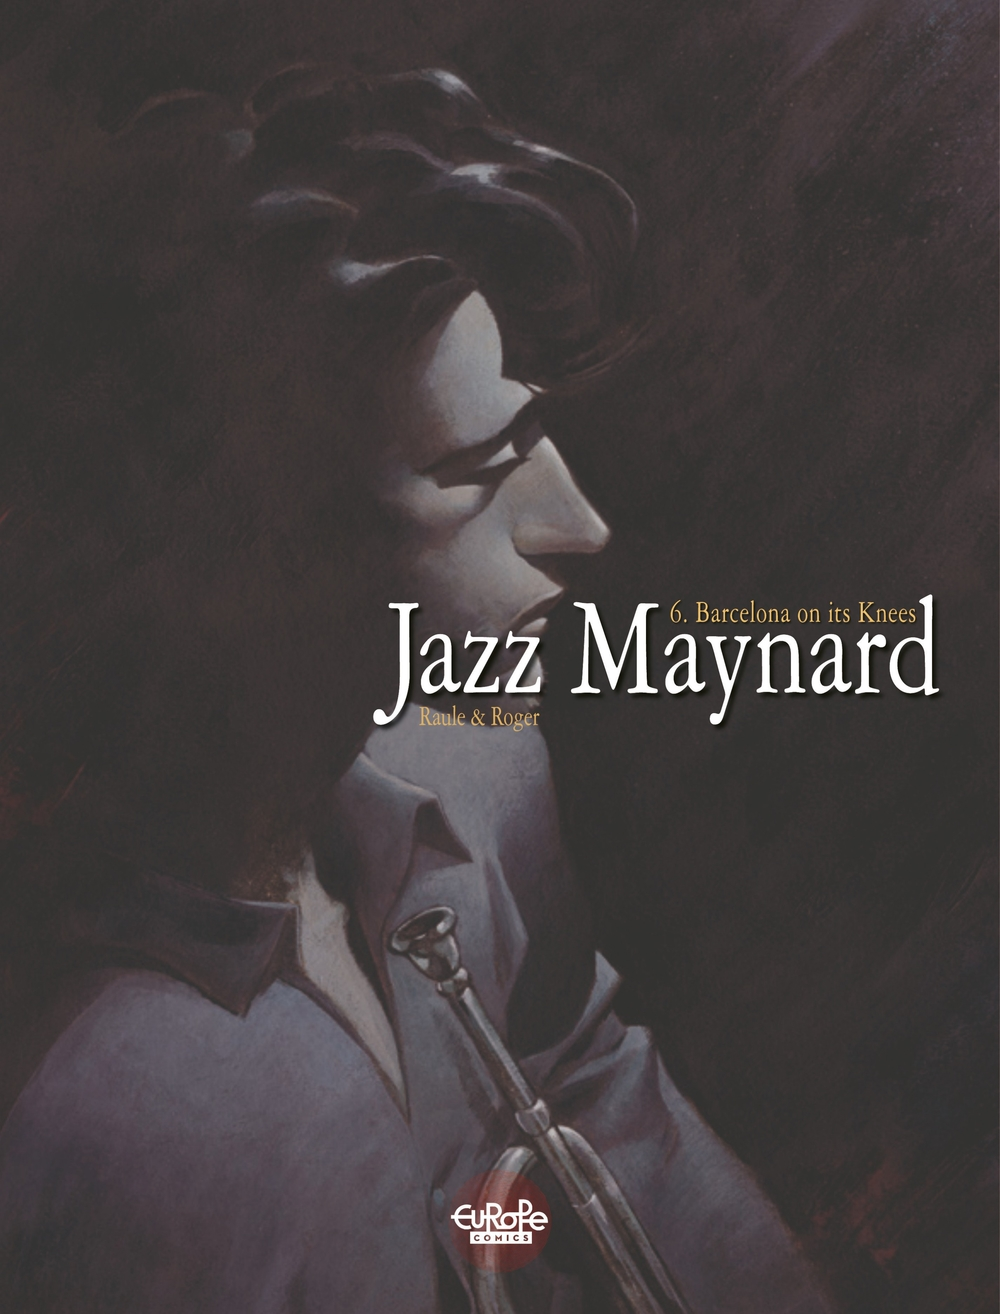 Jazz Maynard - Barcelona on its Knees